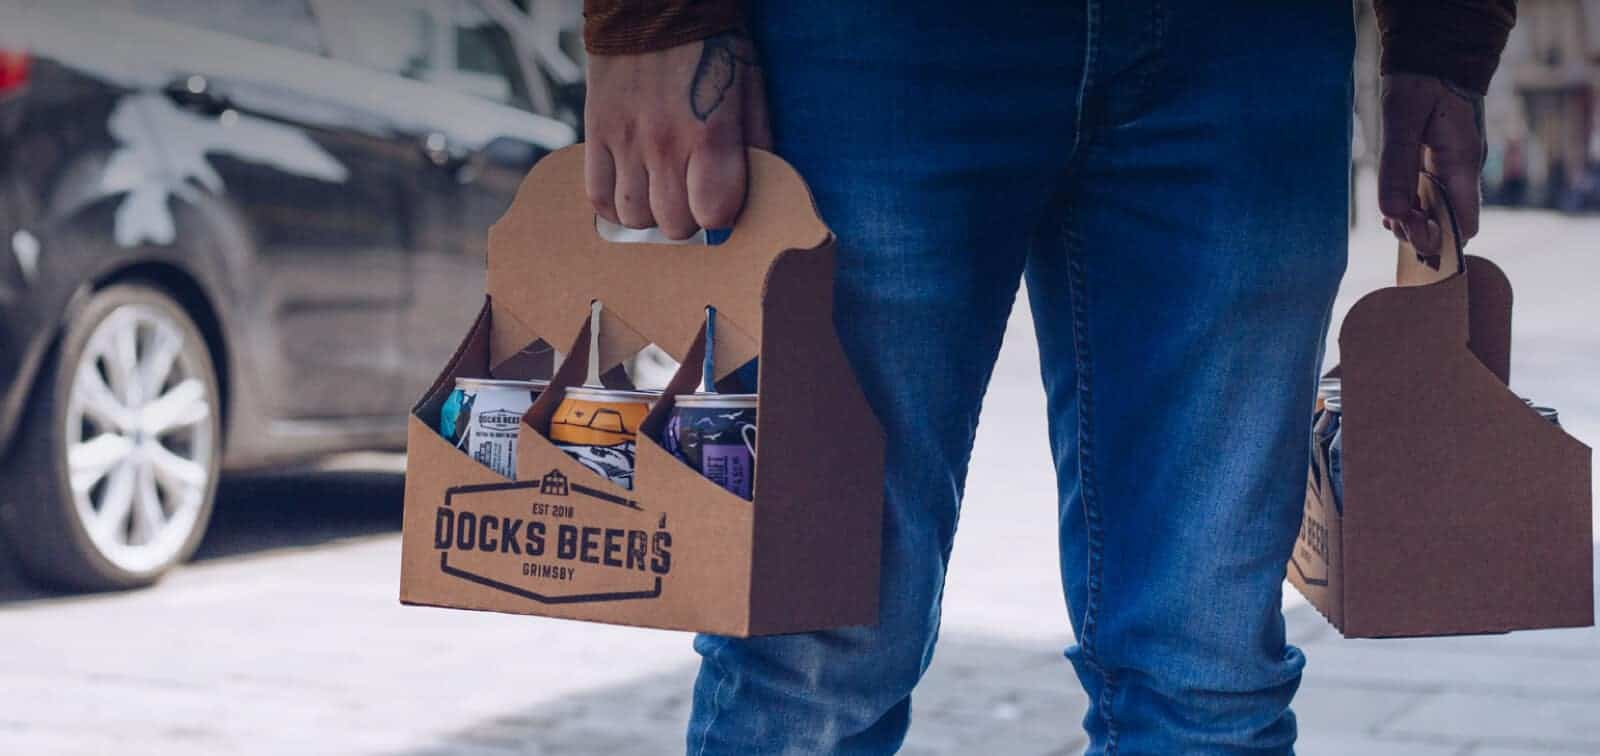 Docks Beers Click and collect service